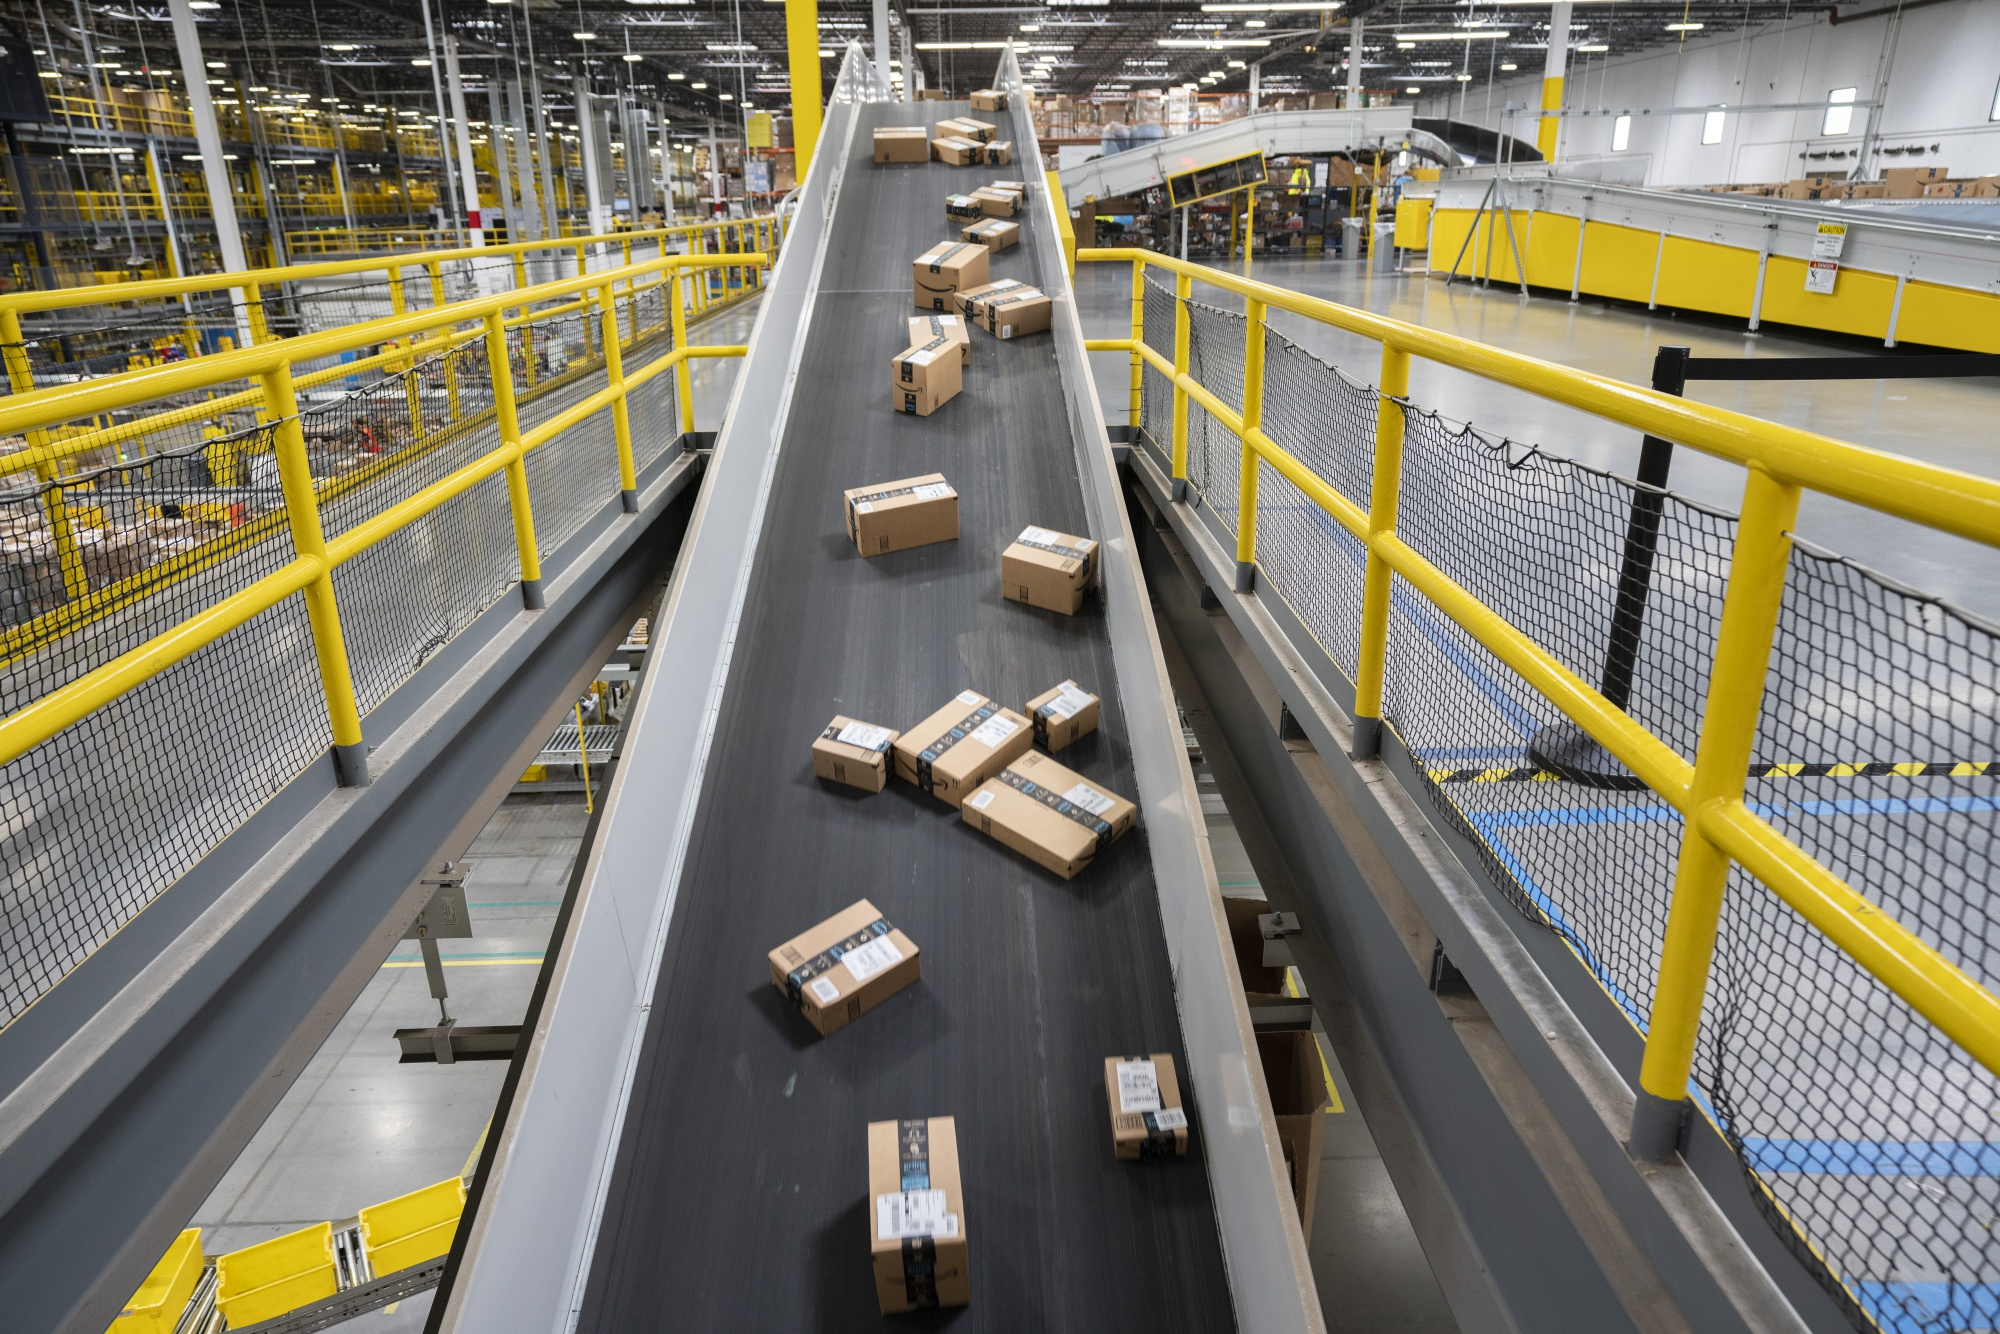 Operations At An Amazon.Com Inc. Fulfillment Center